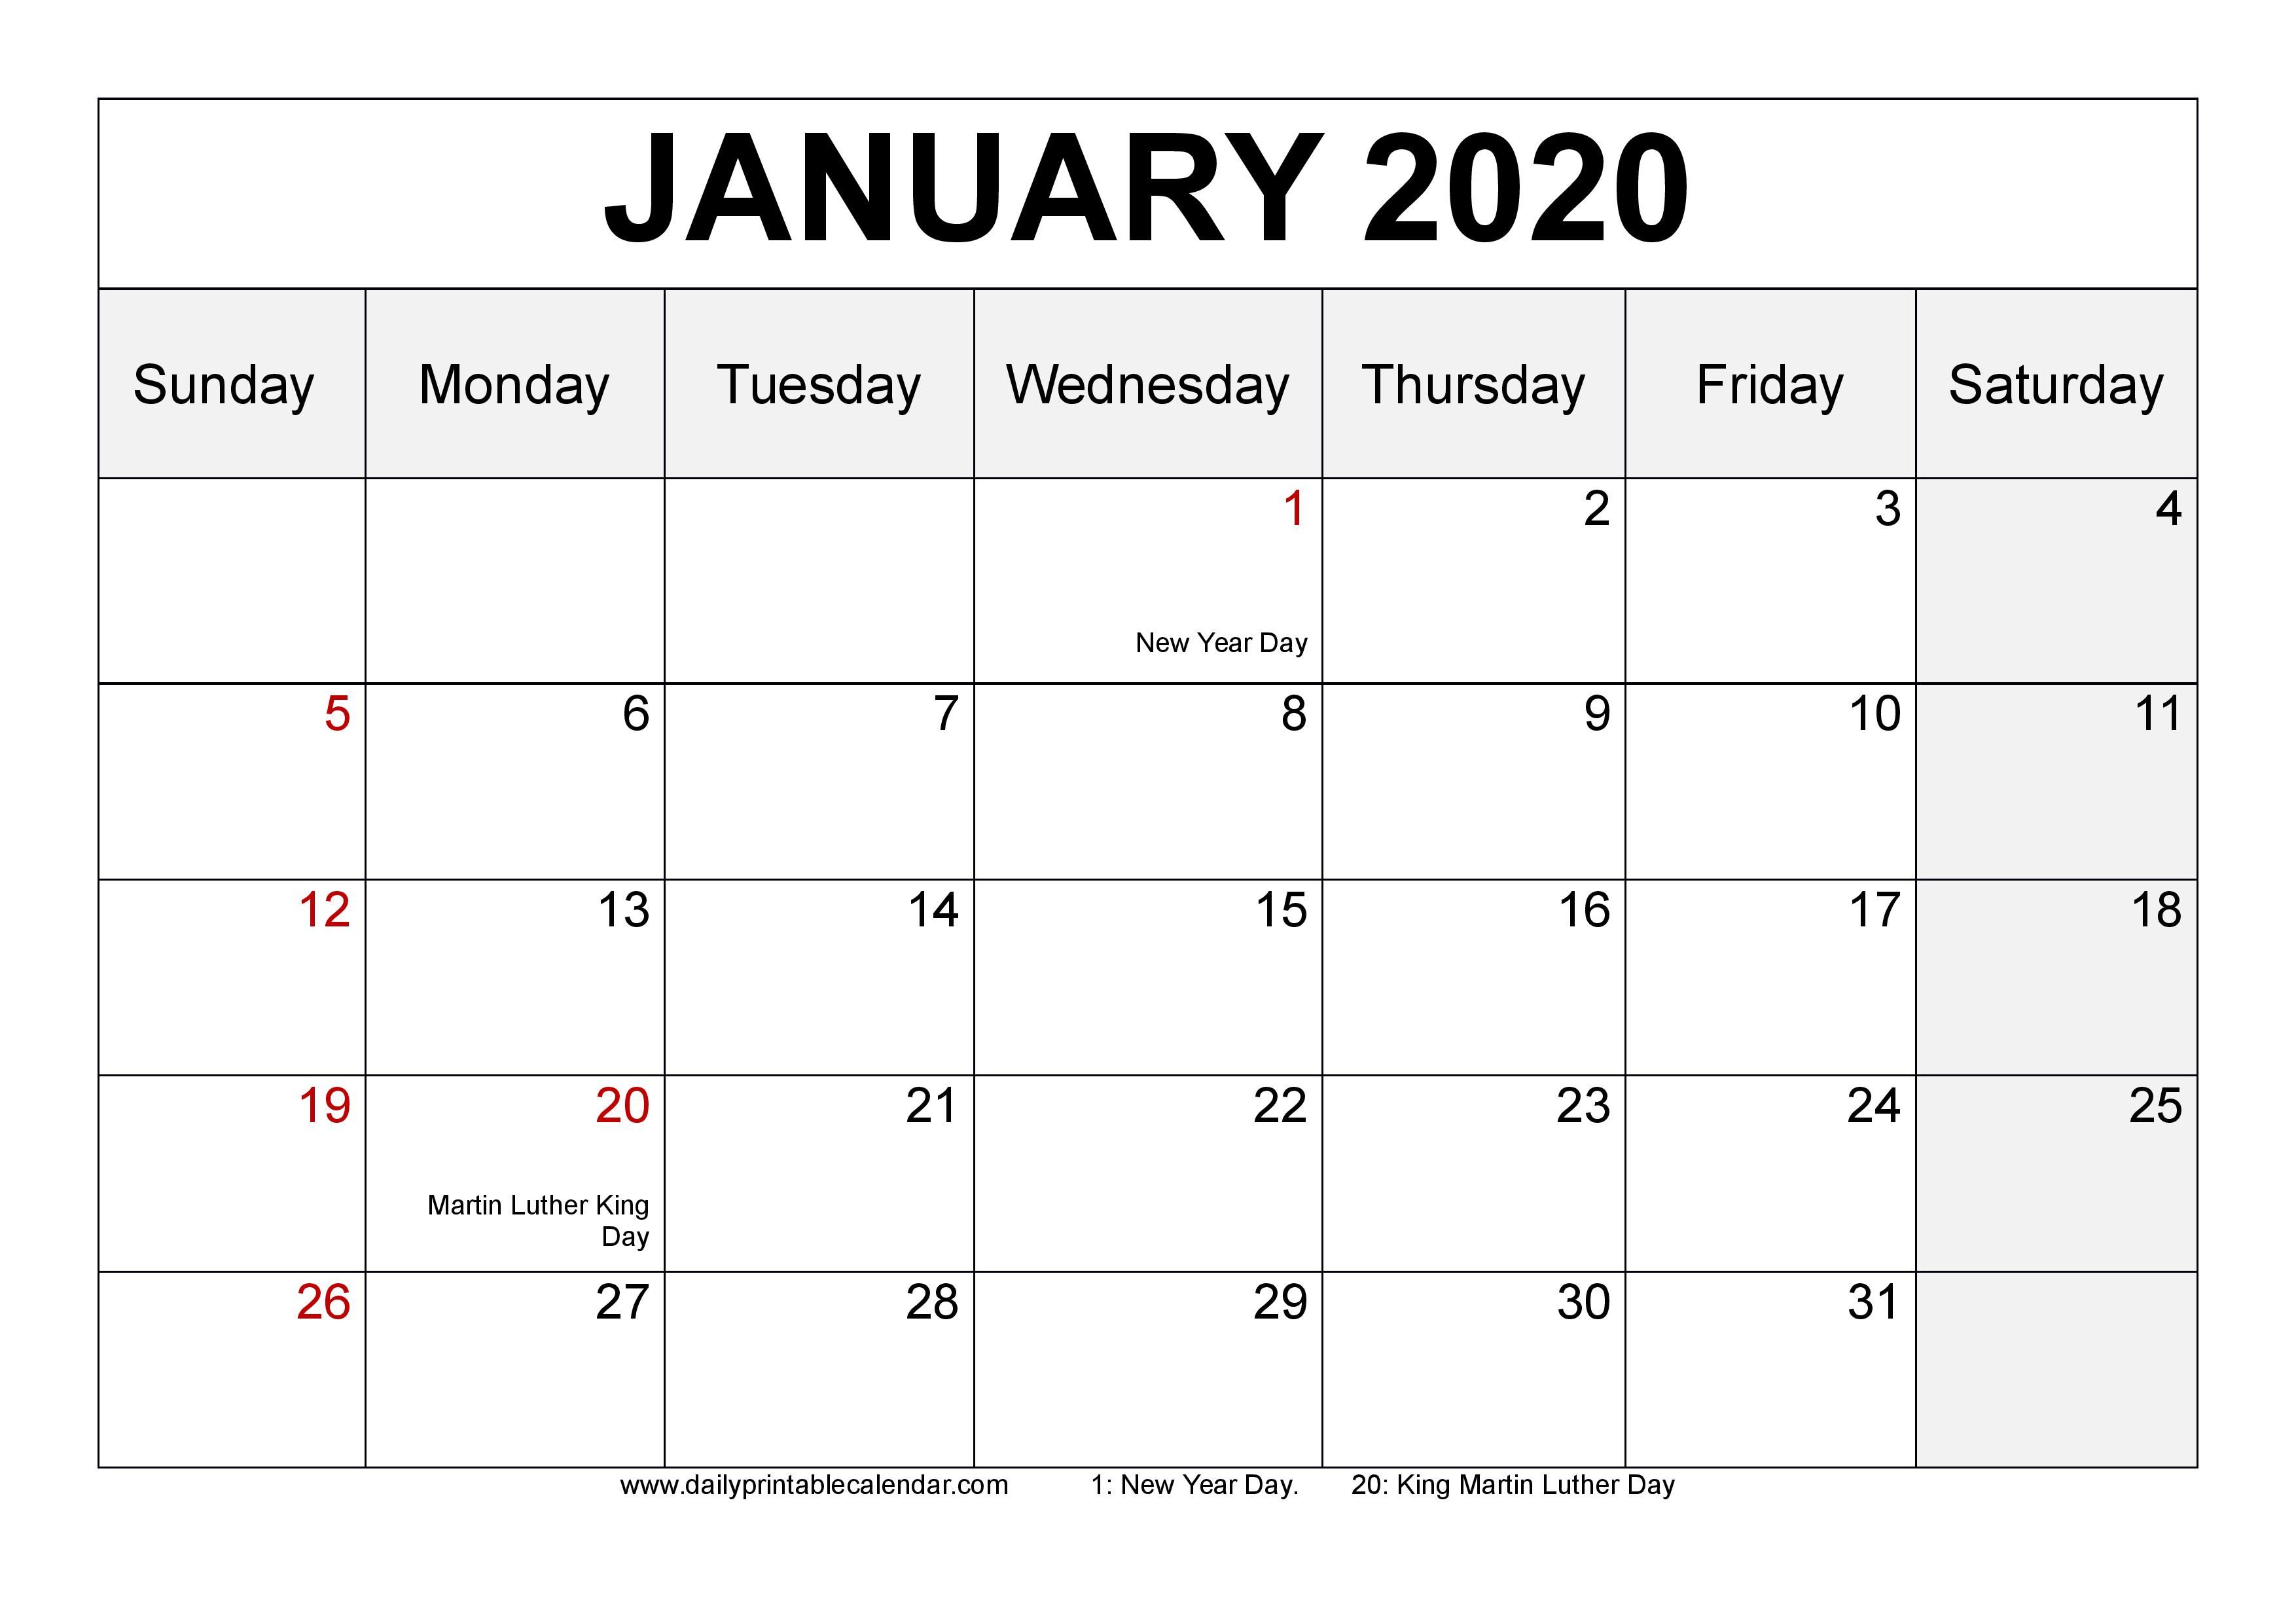 January 2020 Calendar Printable  Blank Templates  2020 throughout Blank 31 Day Calendar